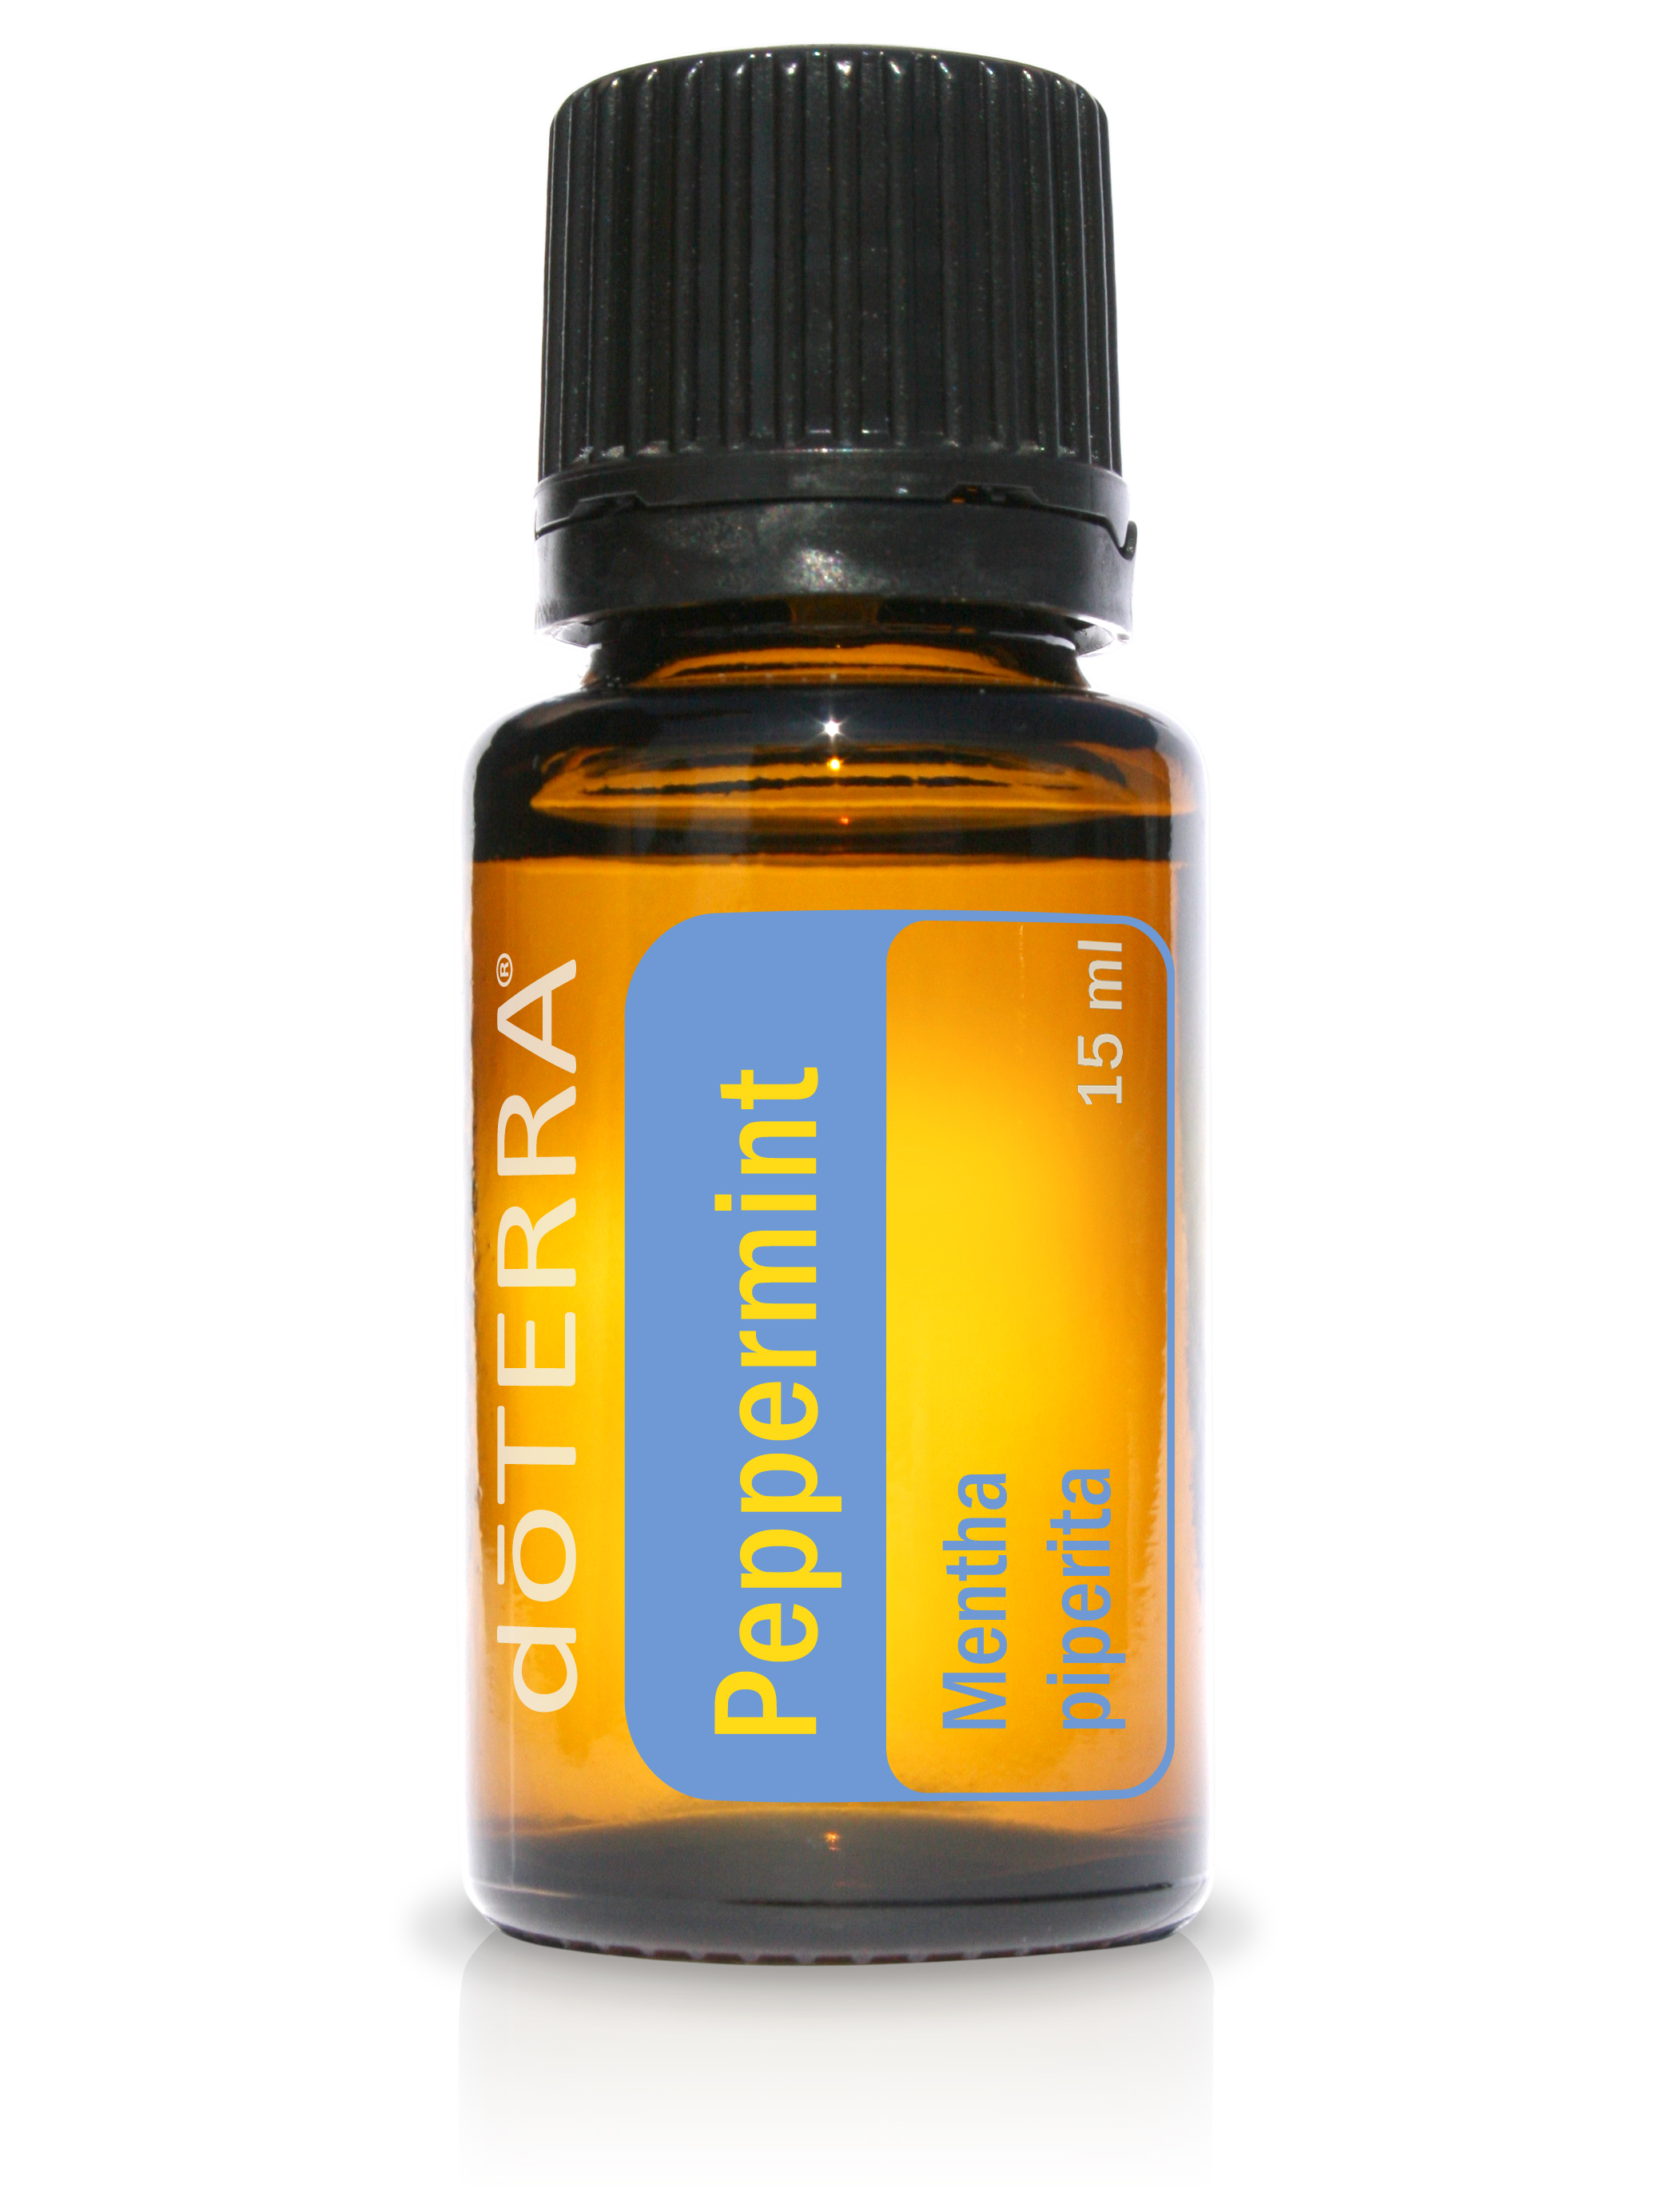 Therapeutic Essential Oils: Peppermint